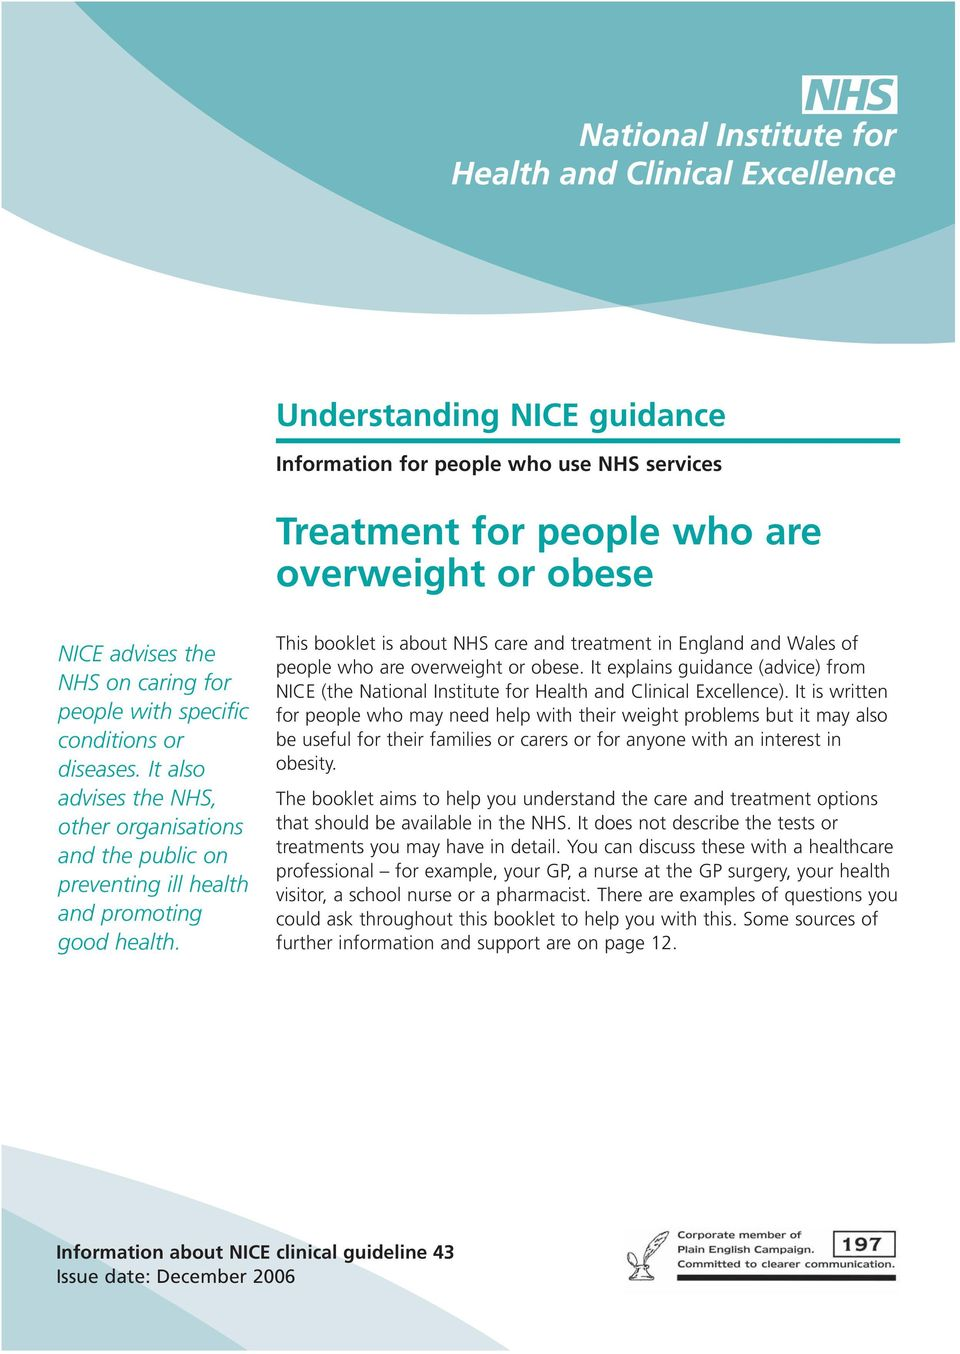 This booklet is about NHS care and treatment in England and Wales of people who are overweight or obese.